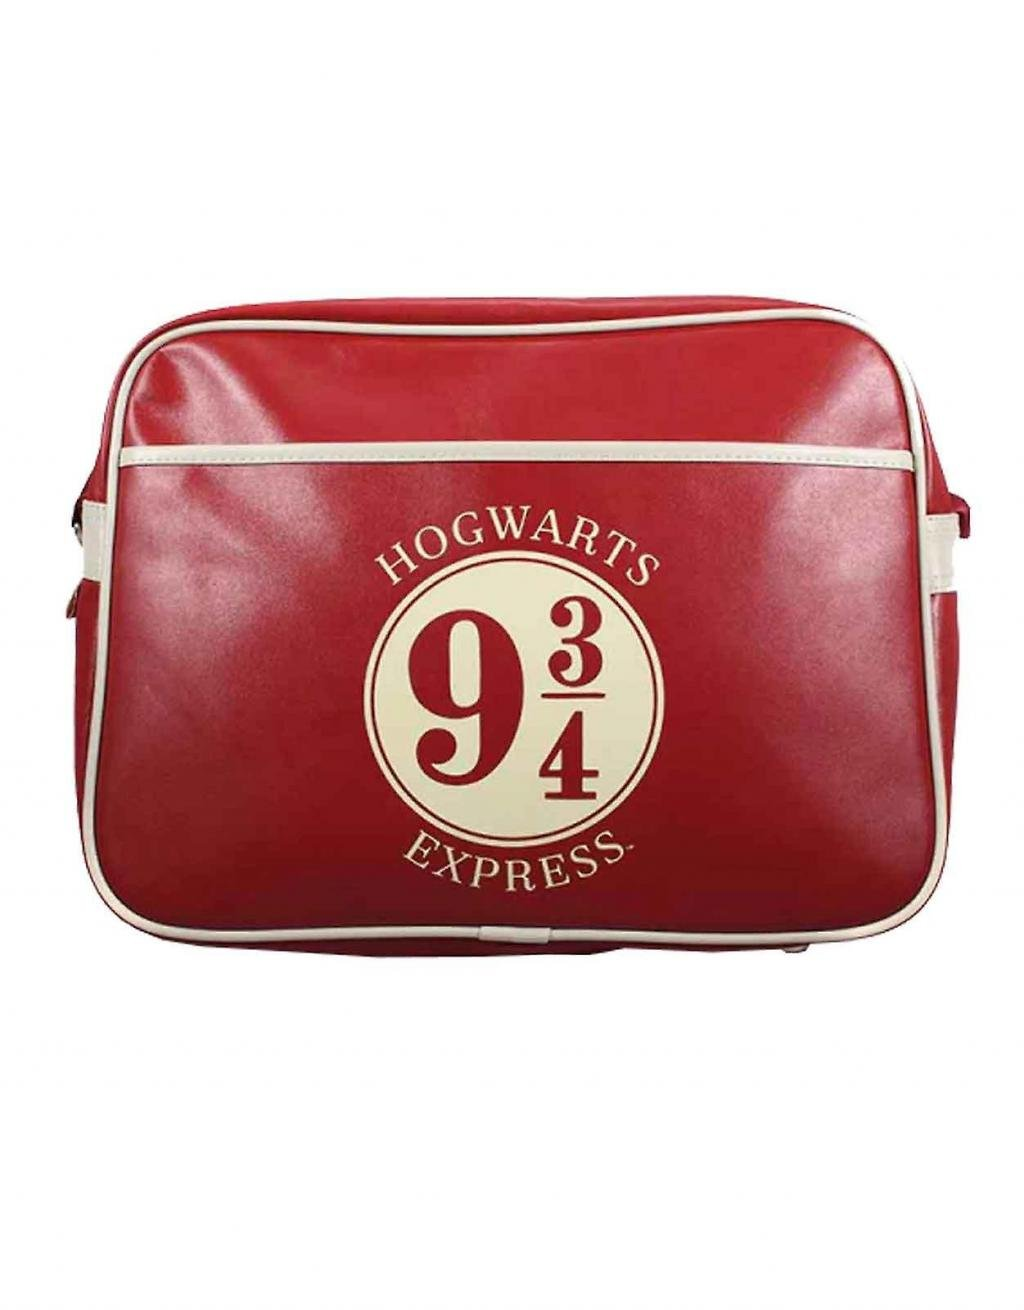 HARRY POTTER - Retro Messenger Bag - Platform 9 3/4